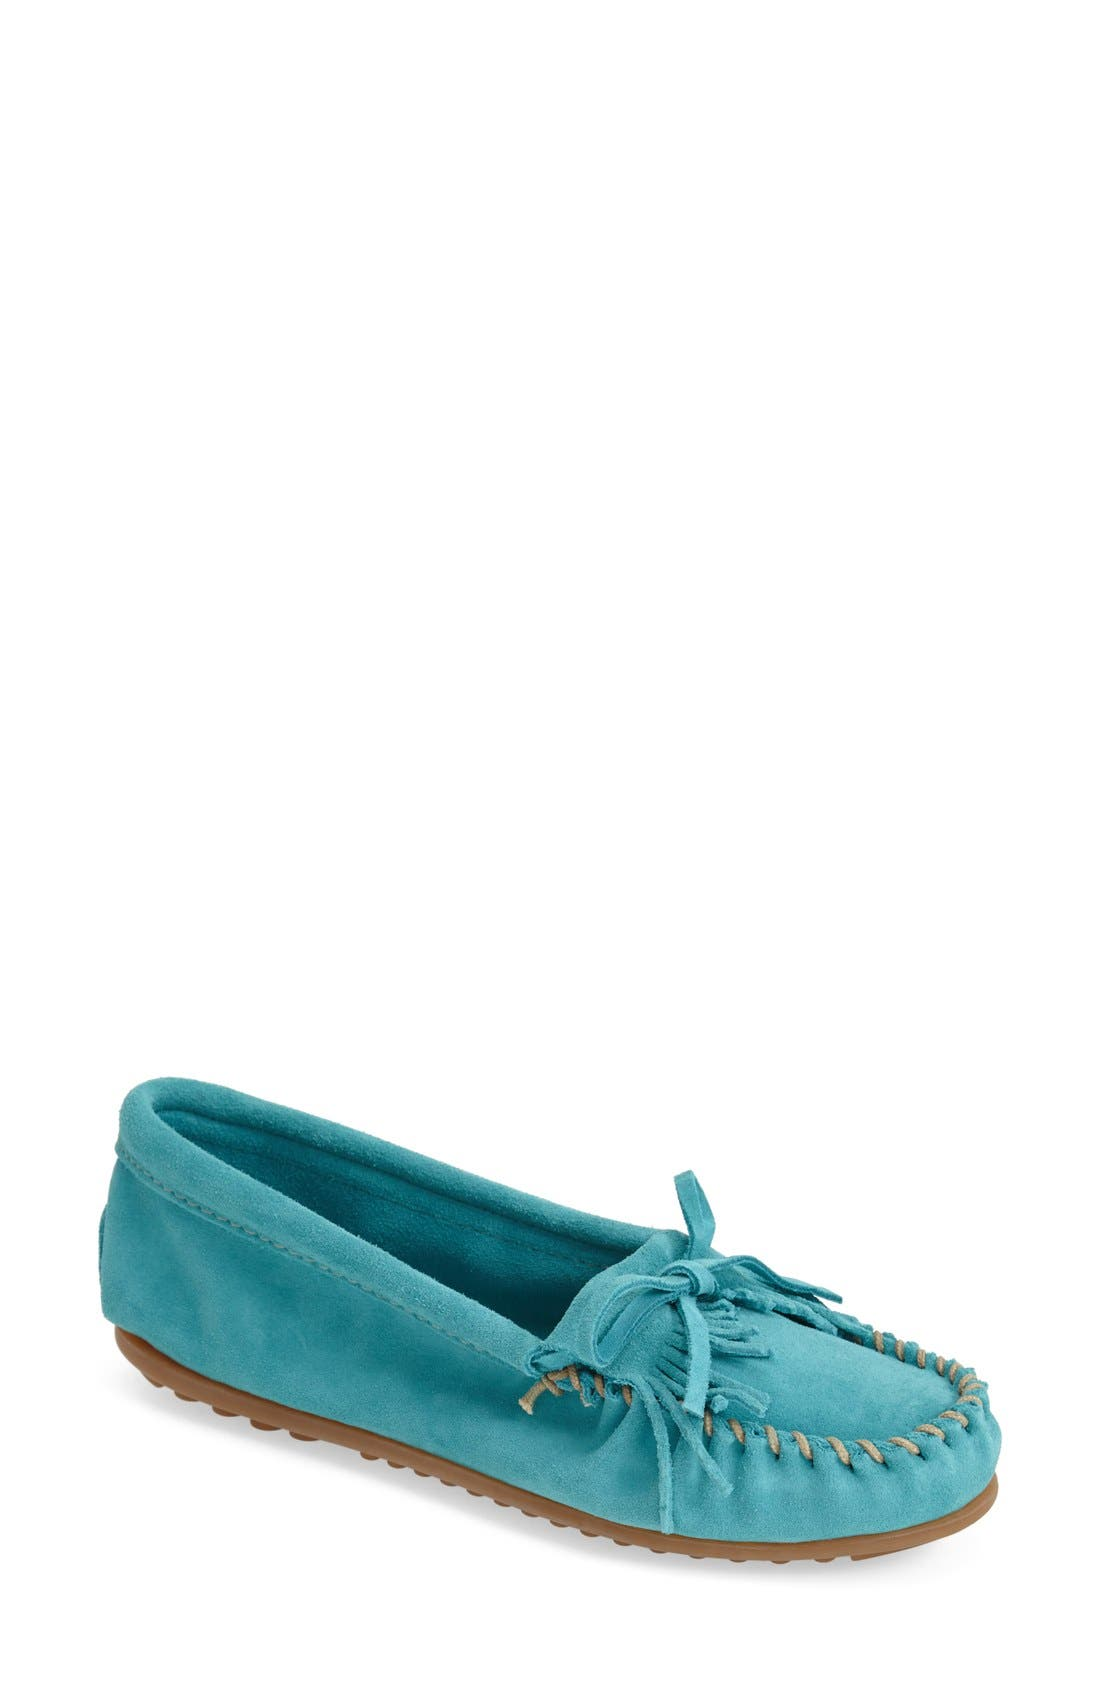 'Kilty' Suede Moccasin,                         Main,                         color, TURQUOISE